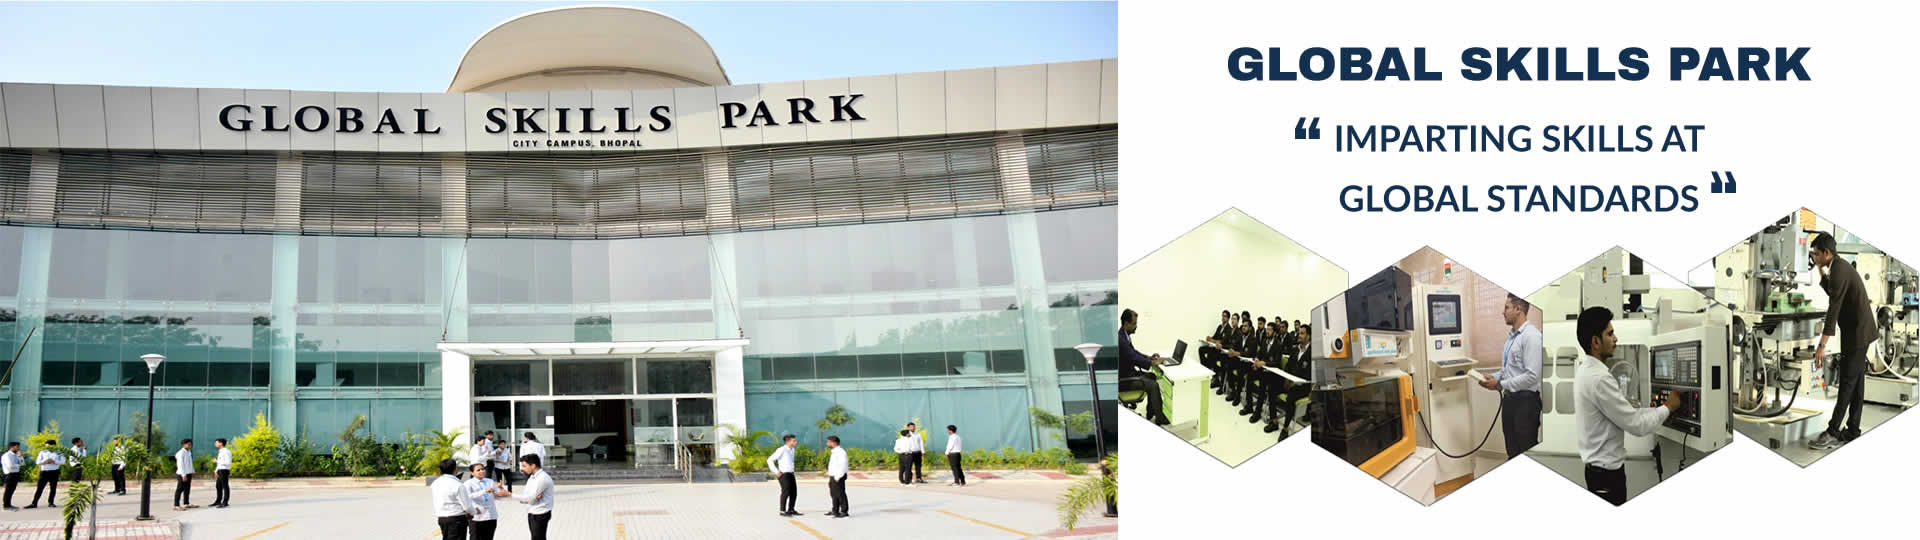 GLOBAL SKILLS PARK - City Campus Bhopal